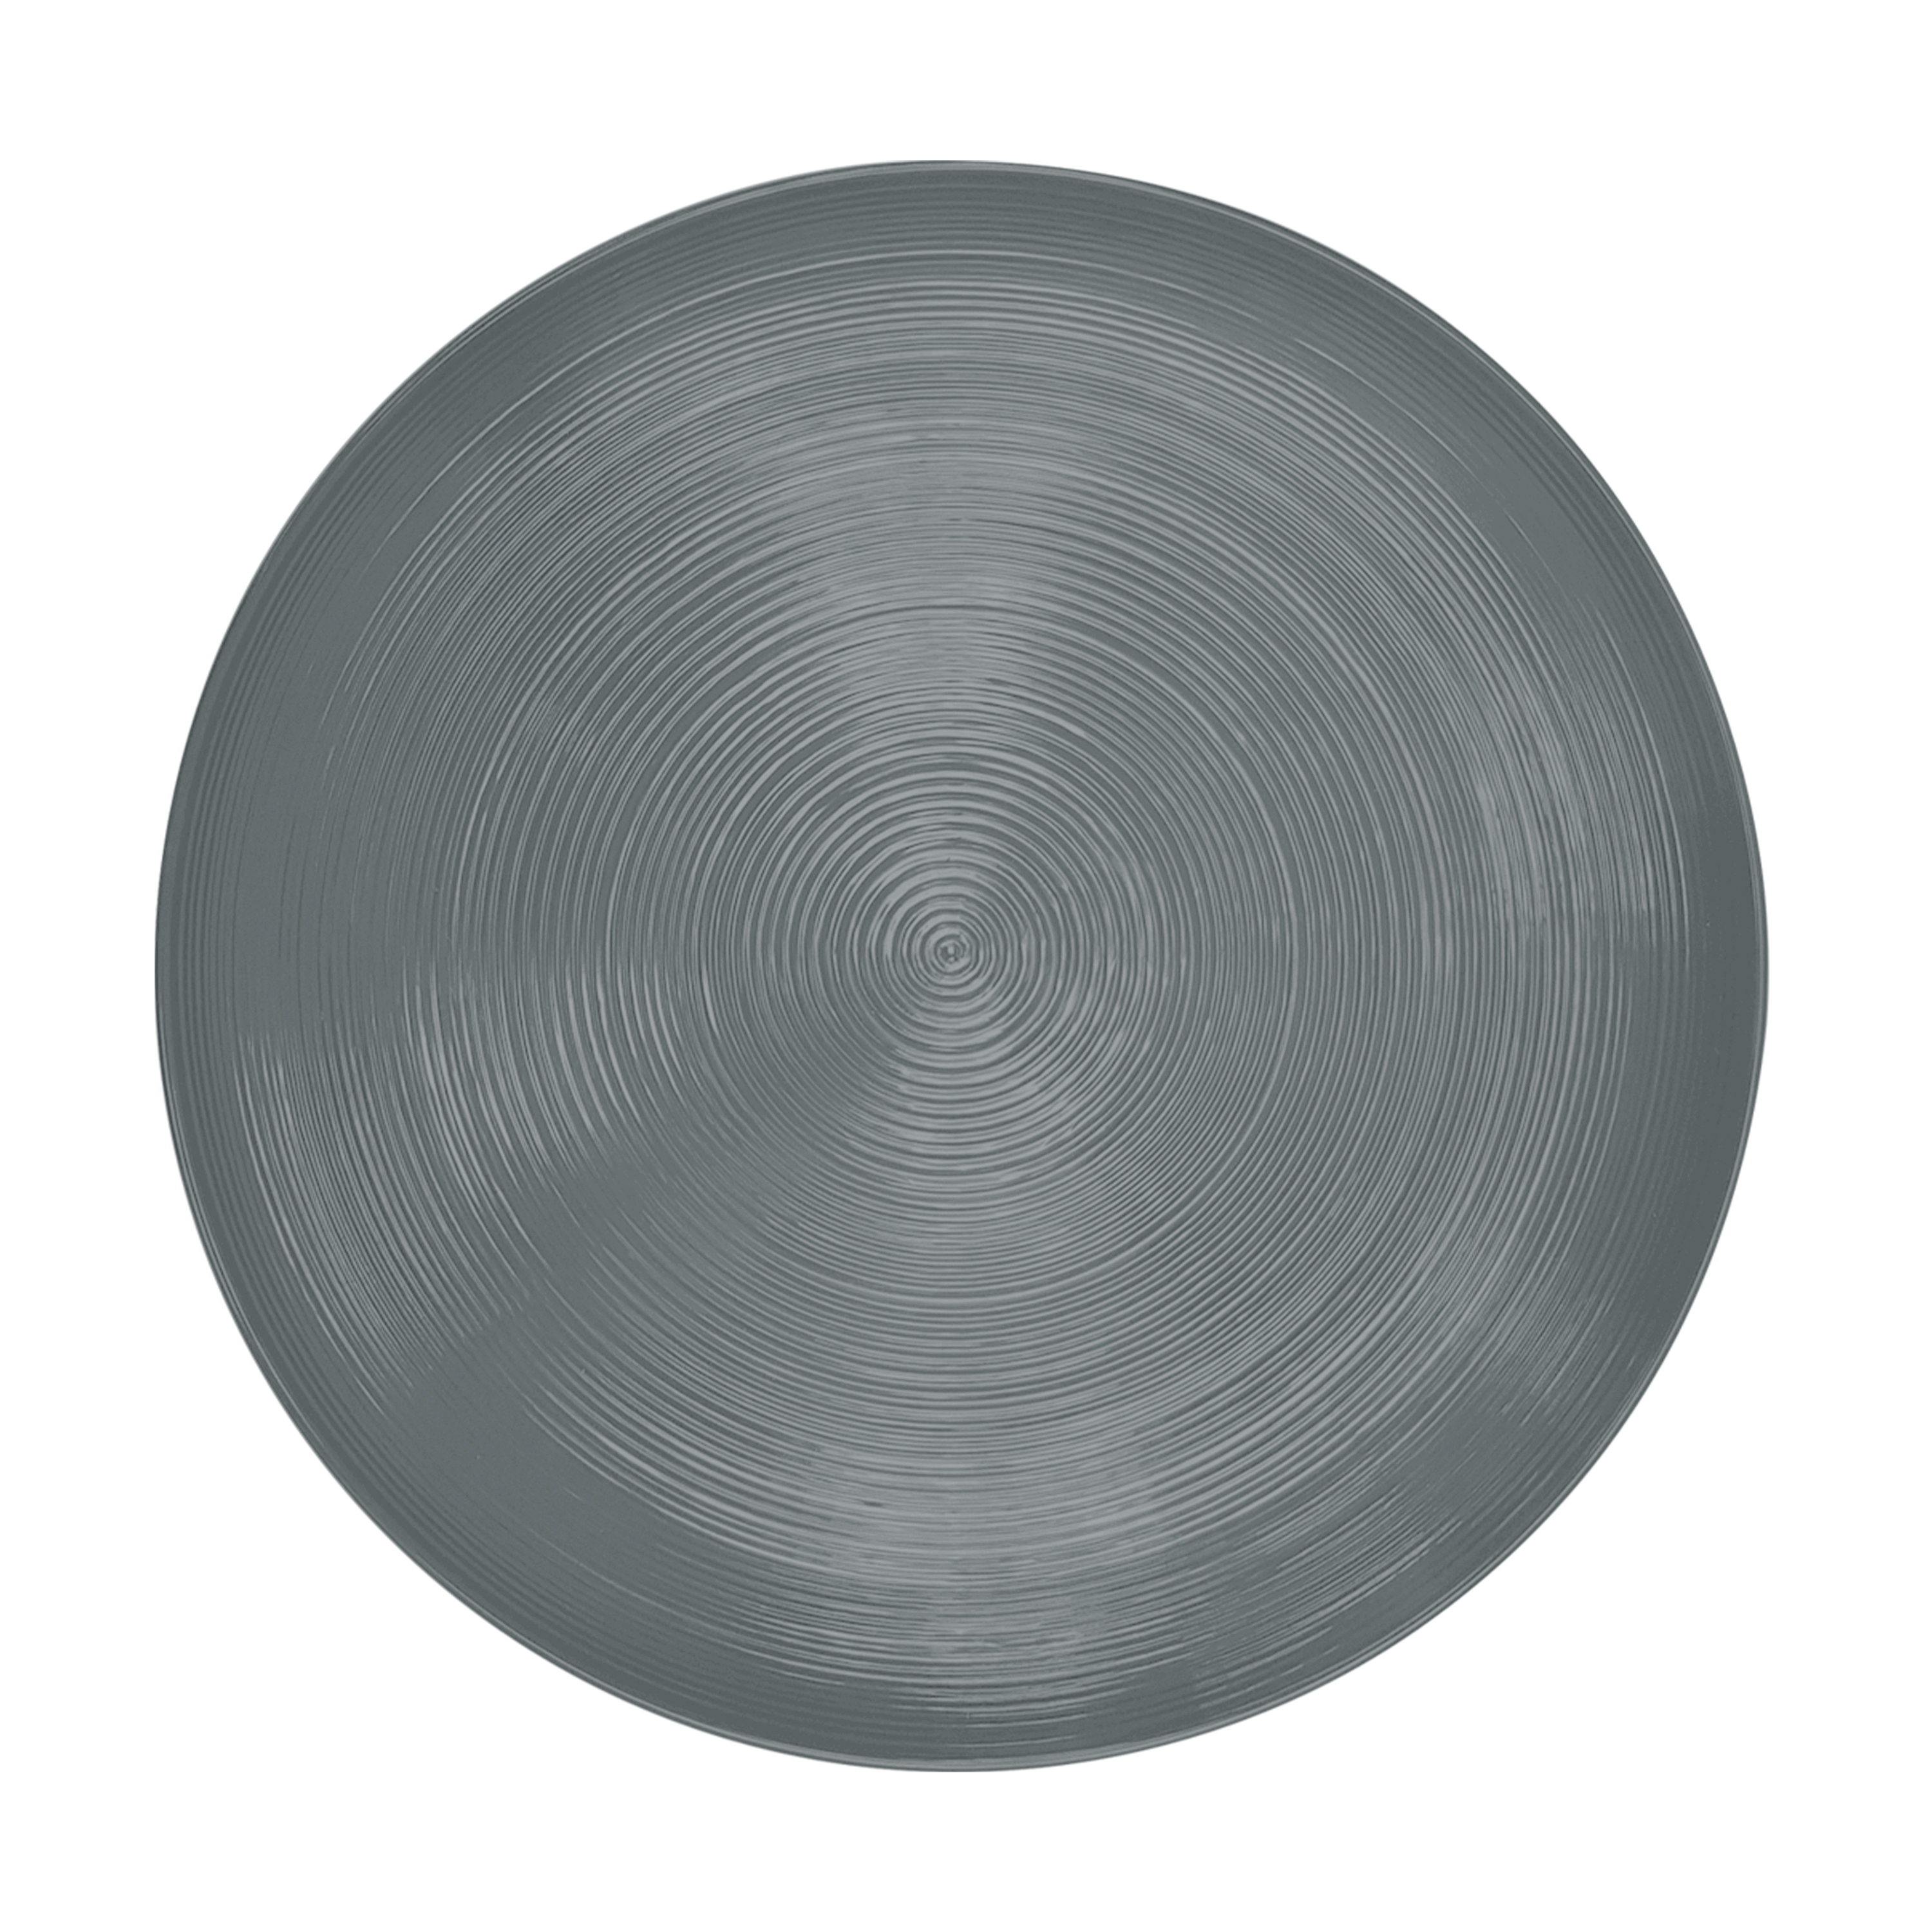 American Conventional Plate & Bowl Sets, Charcoal, 12-piece set slideshow image 11